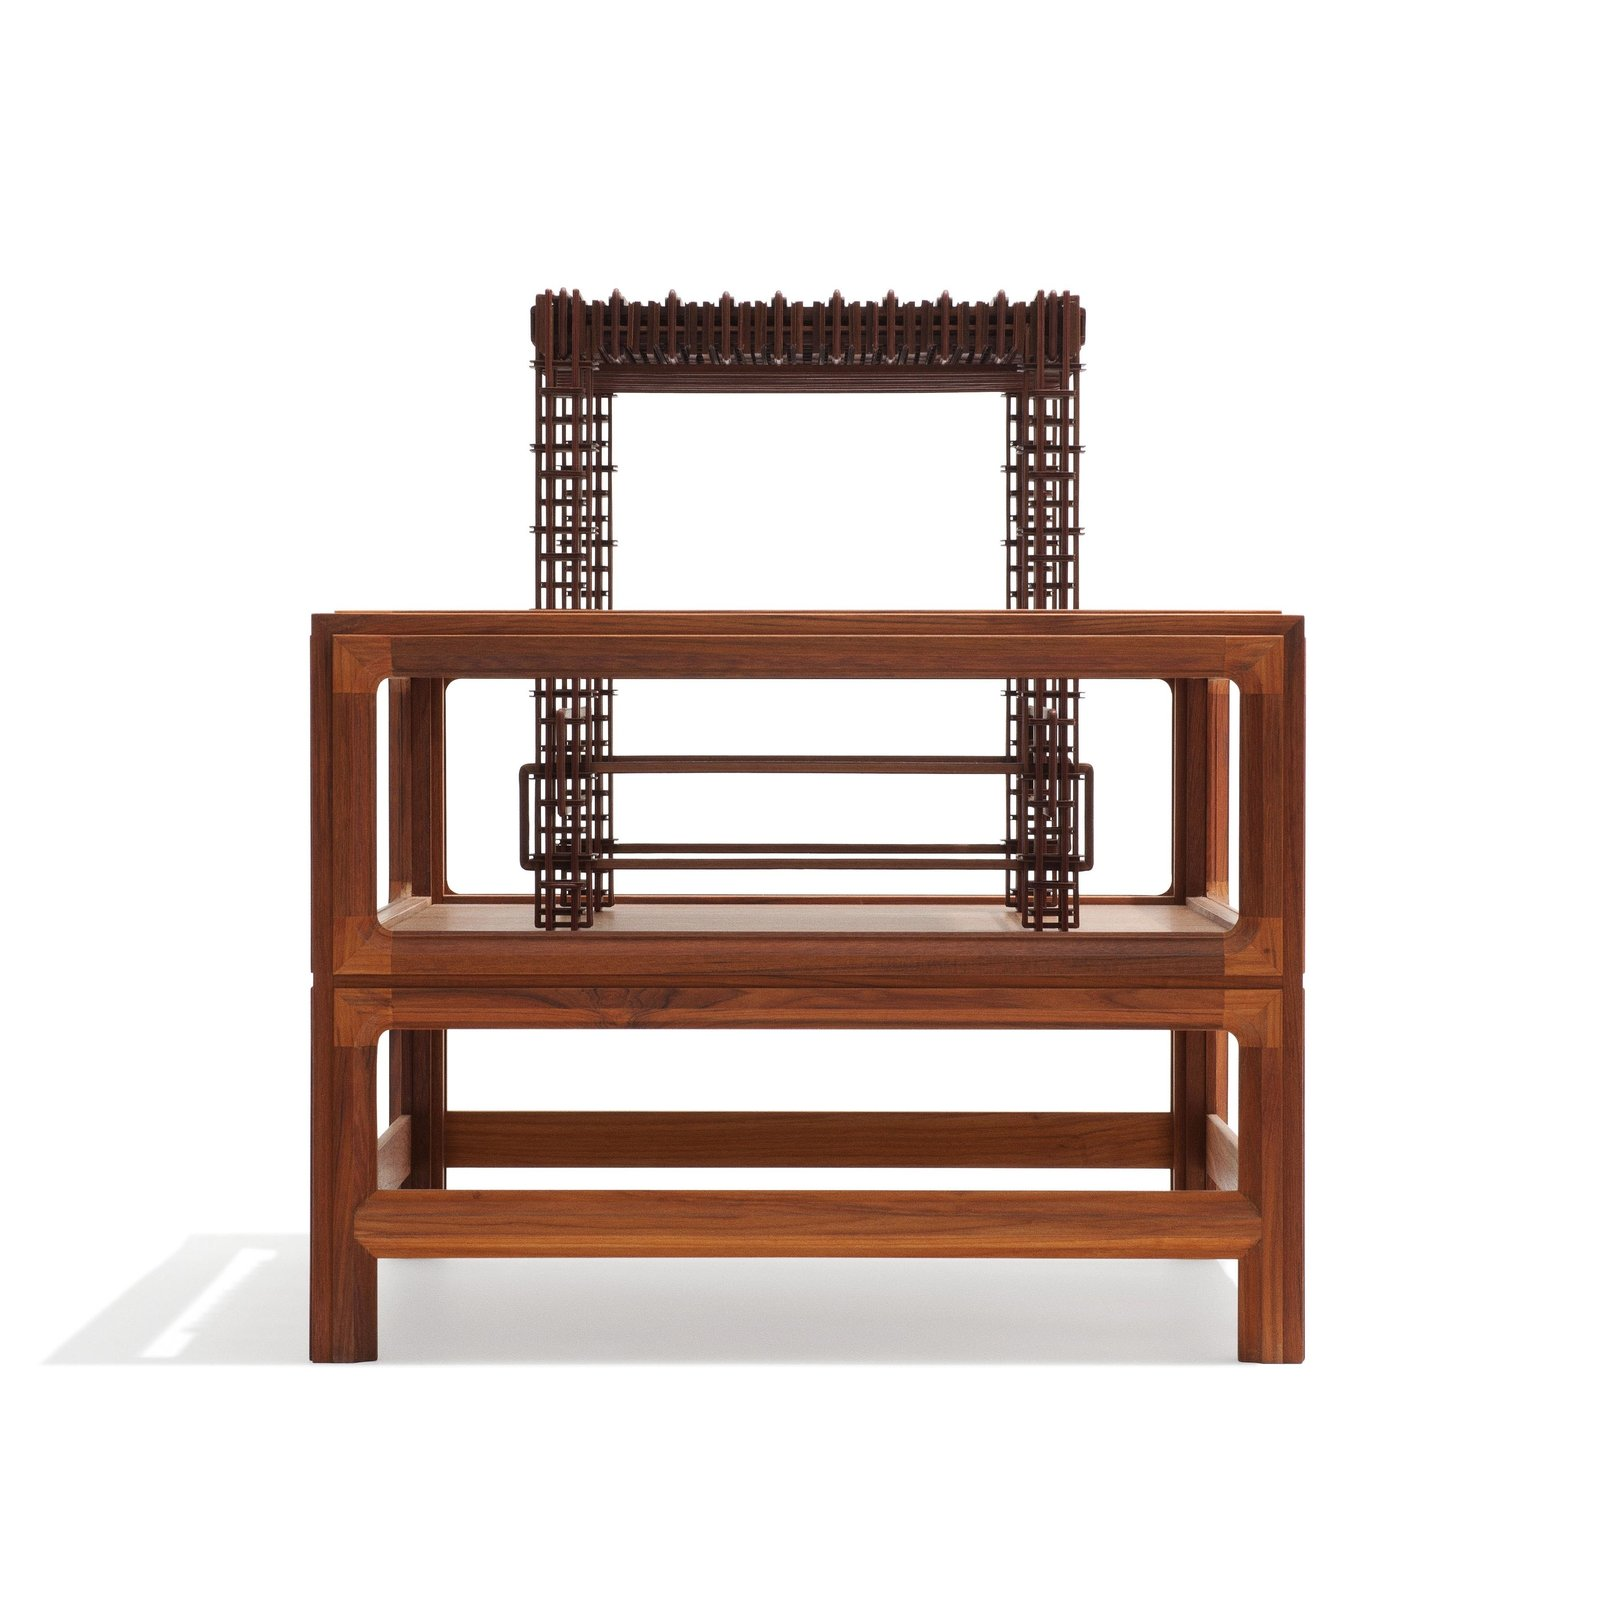 """Completely Dusty by benandsebastian was built to infuriate the cleaner with grooved walnut latticework and leather bindings designed to harbor dust (Shown here on top of its display case).  Search """"diningfurniture--stools"""" from Danish Mindcraft at Ventura Lambrate in Milan"""